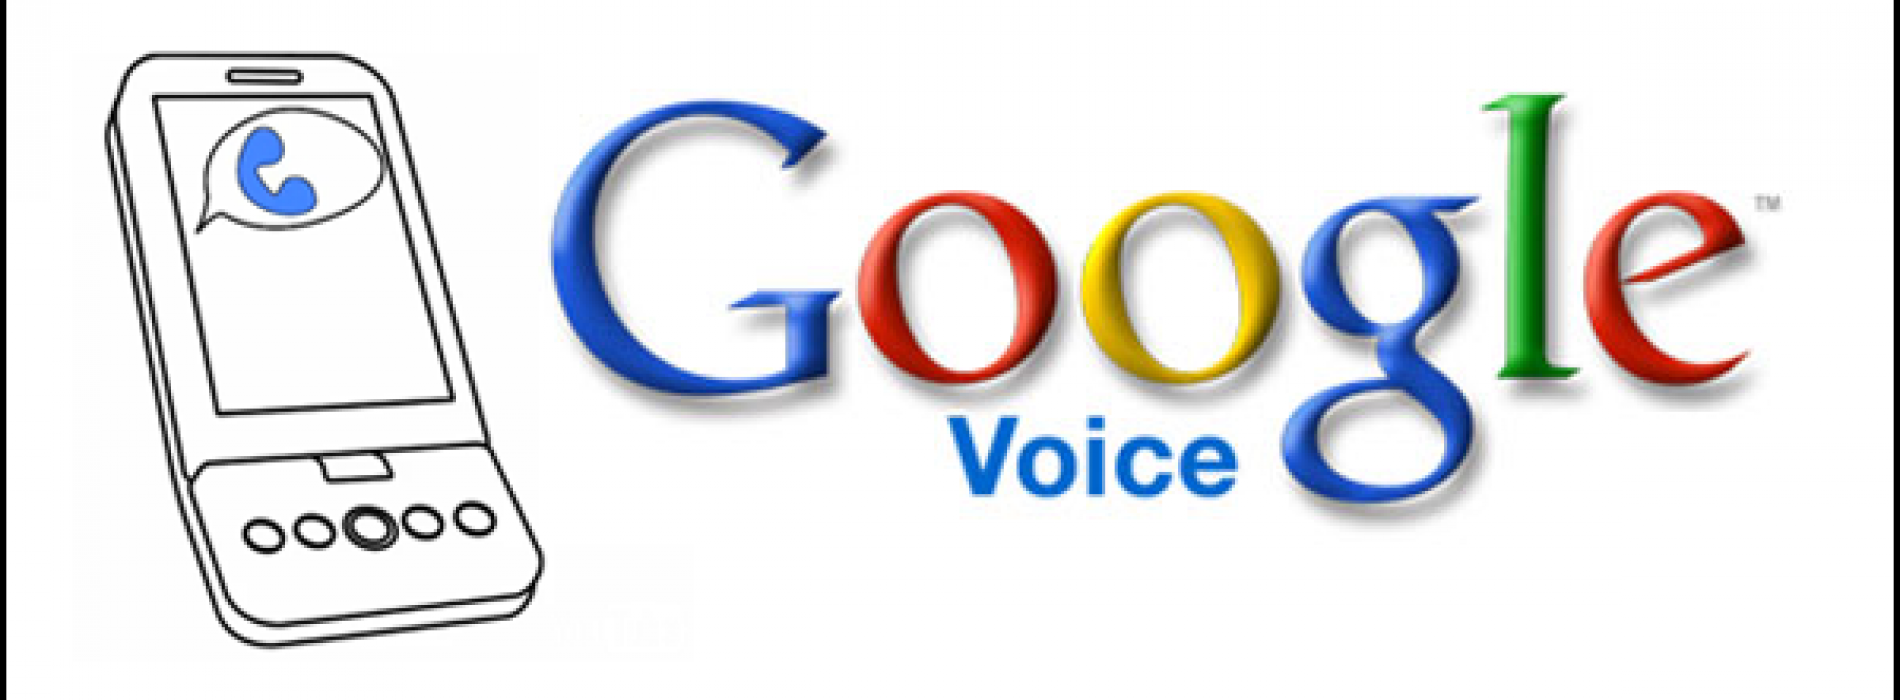 Google Voice update adds multi-recipient text, pre-fetched voicemail